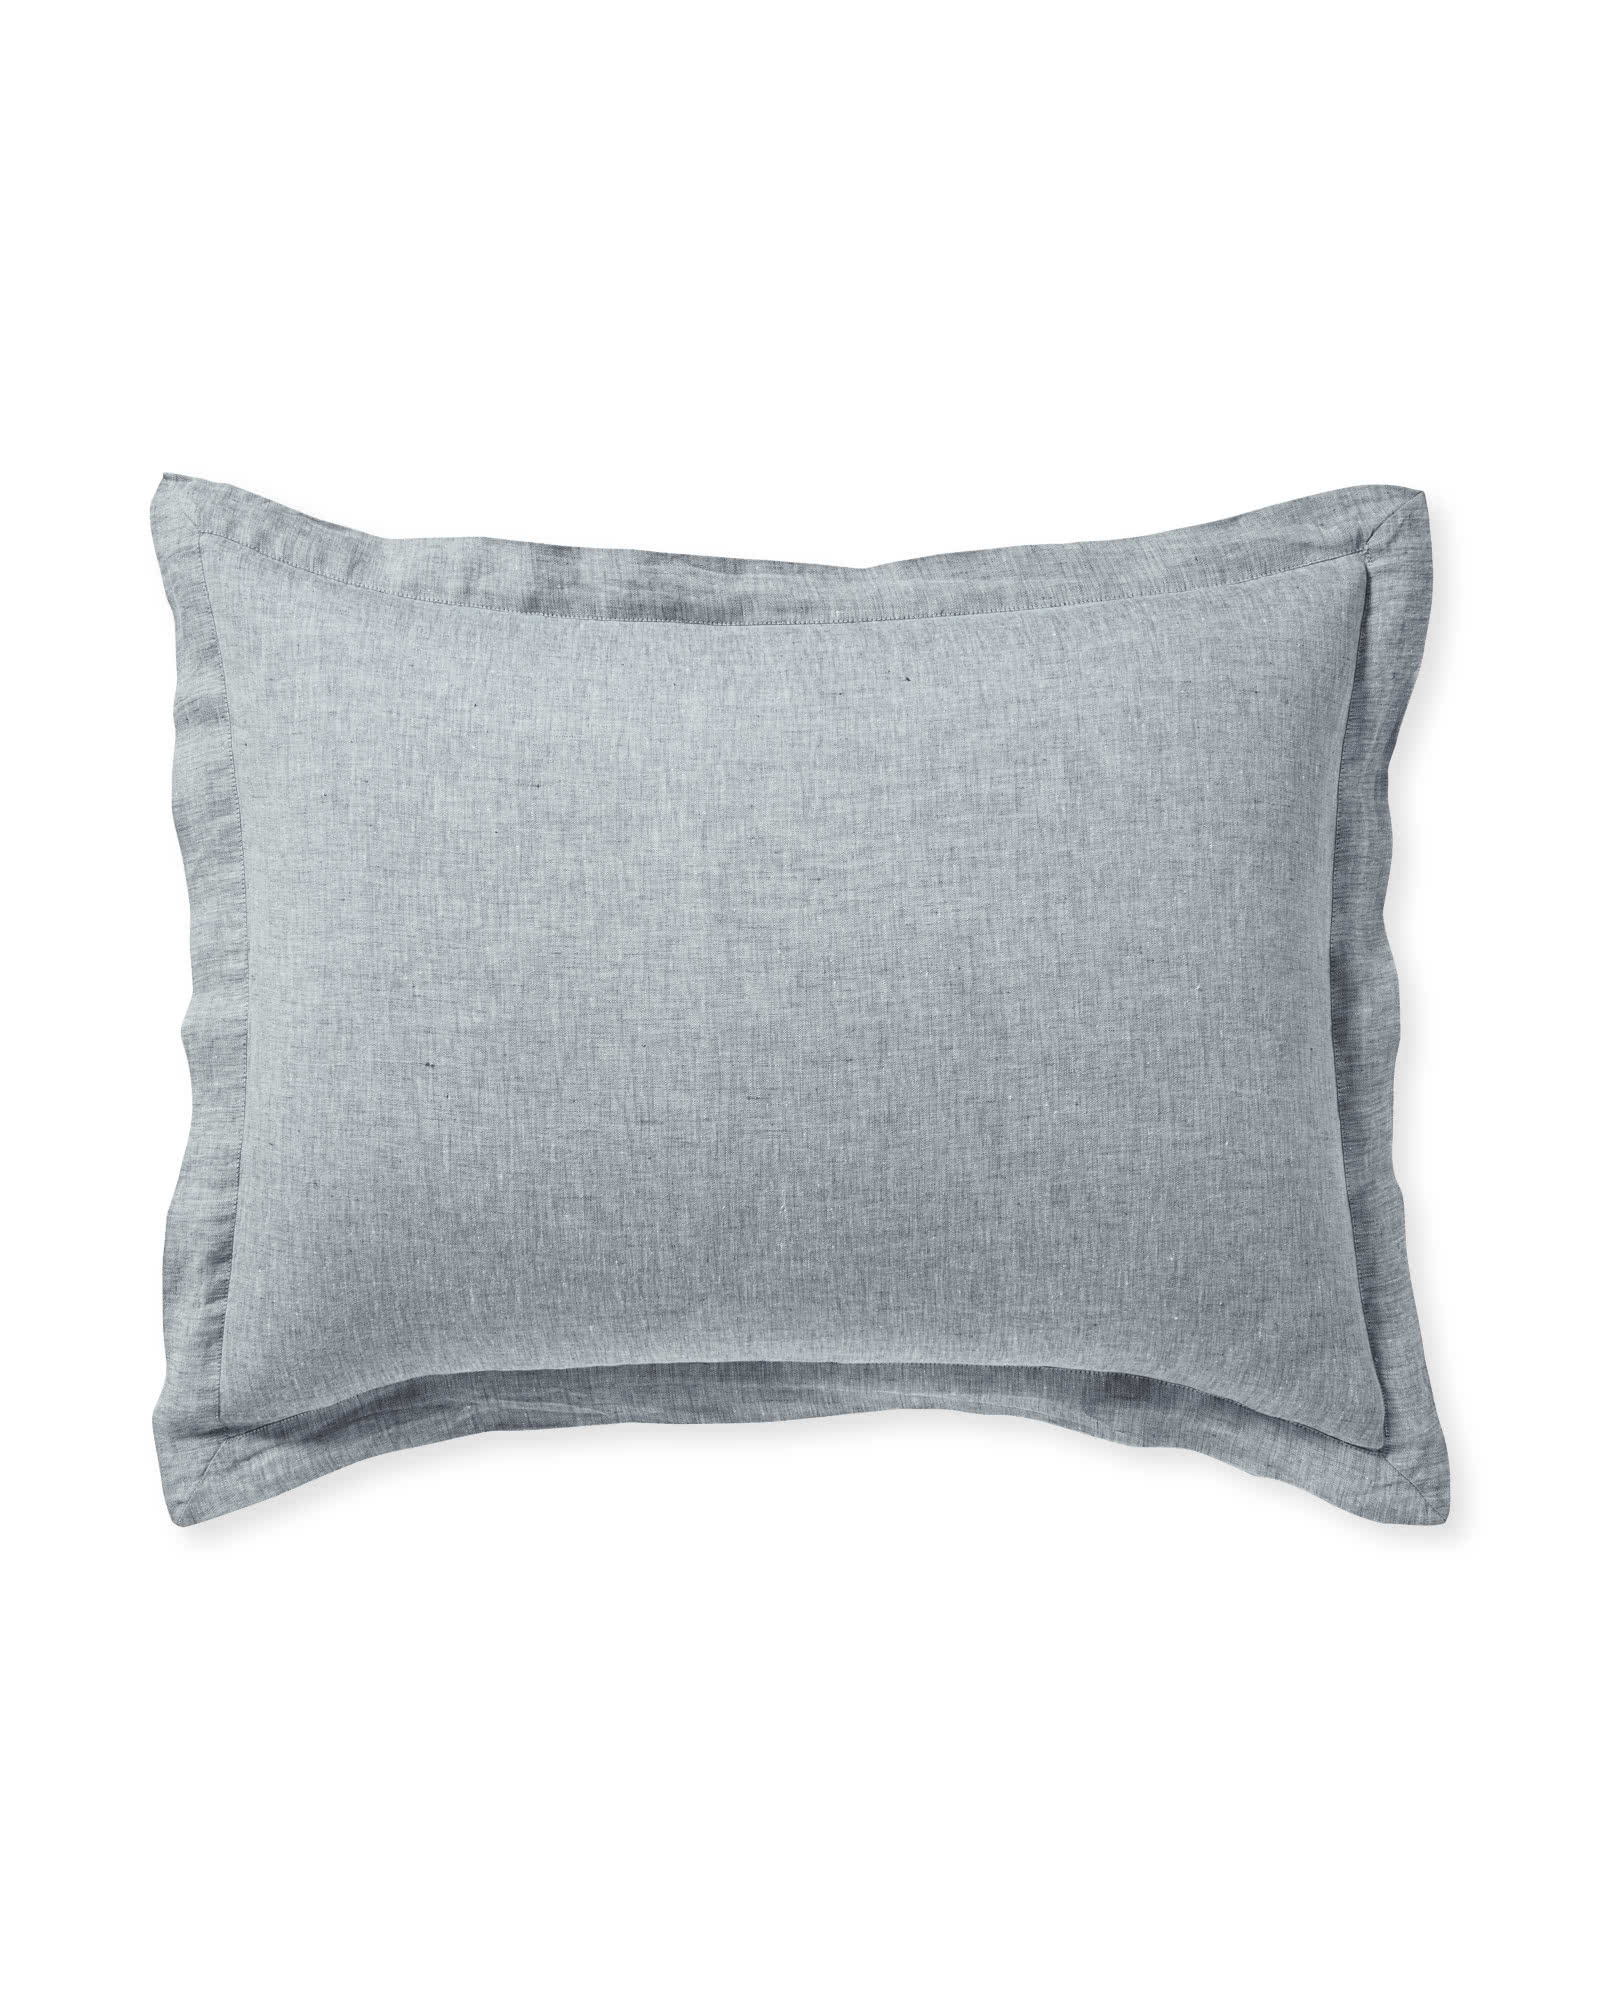 Cavallo Linen Shams, Navy Chambray